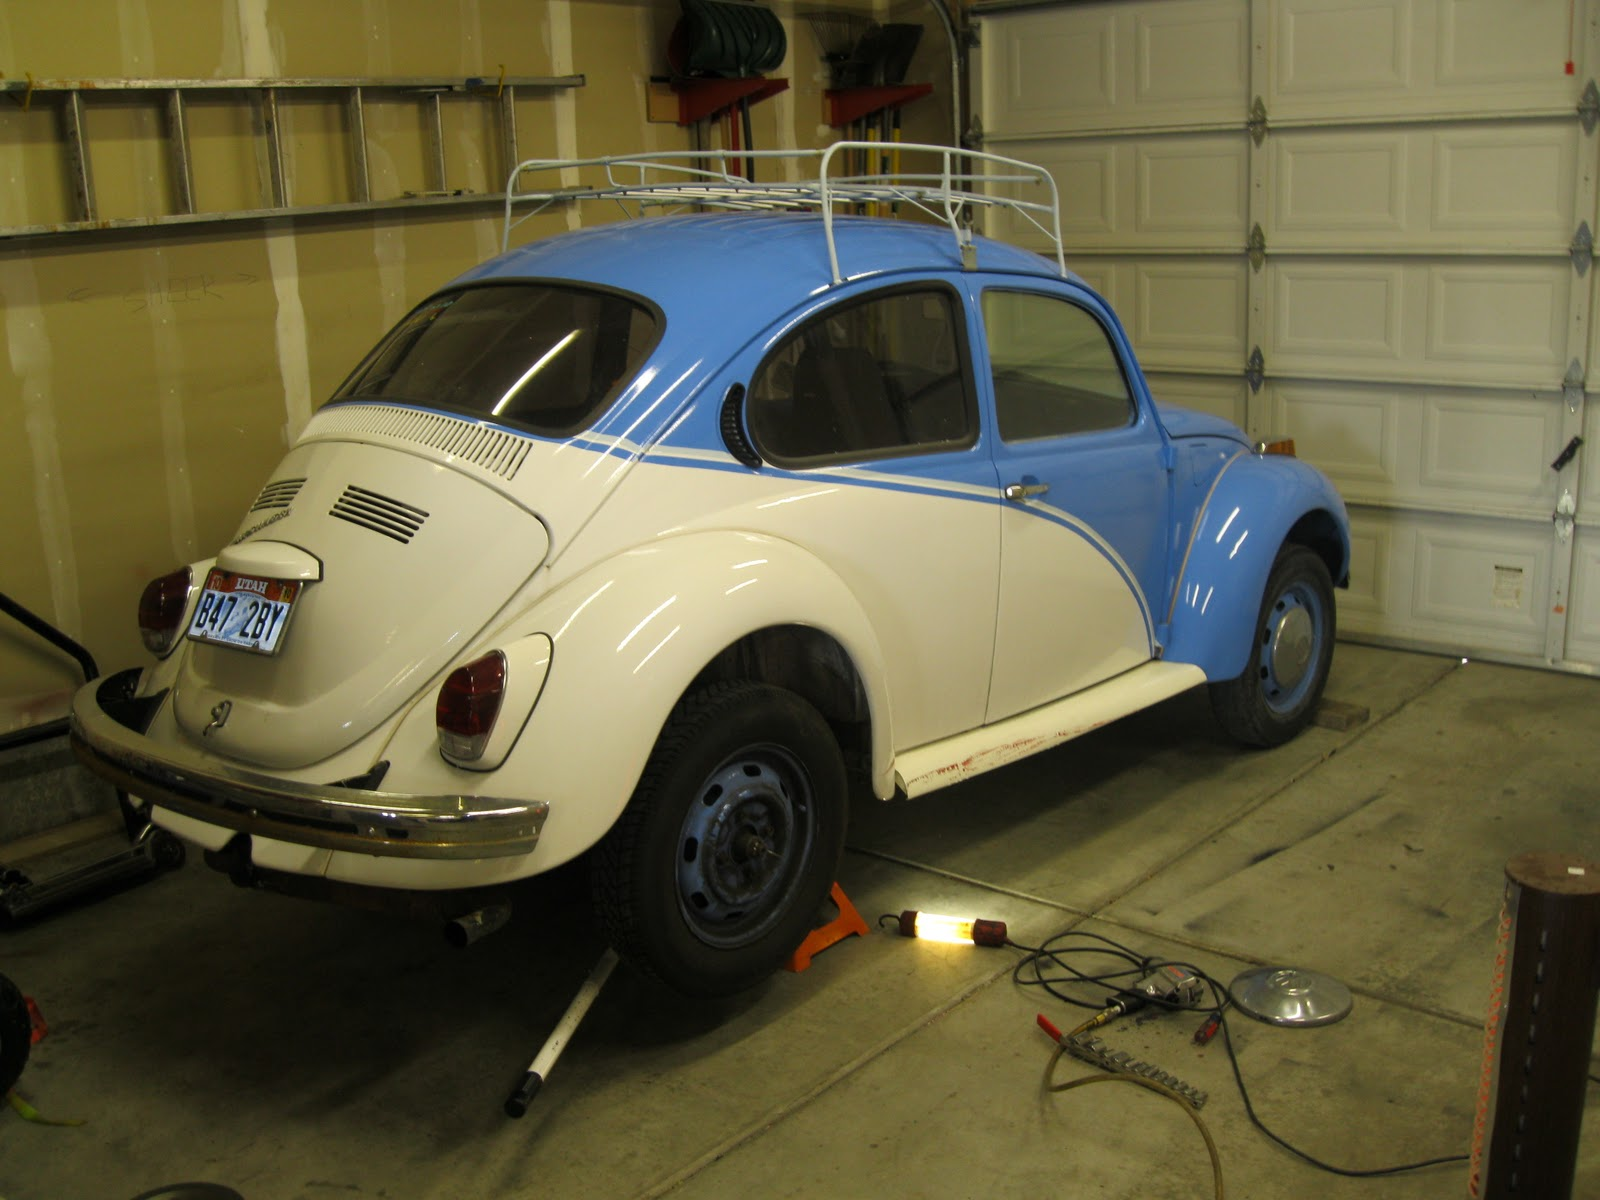 Vw Beetle Rear Suspension Diagram 2001 Ford Focus Engine Front Wiring Diagrams The Bug Boys Rebuilding A Supers End 1972